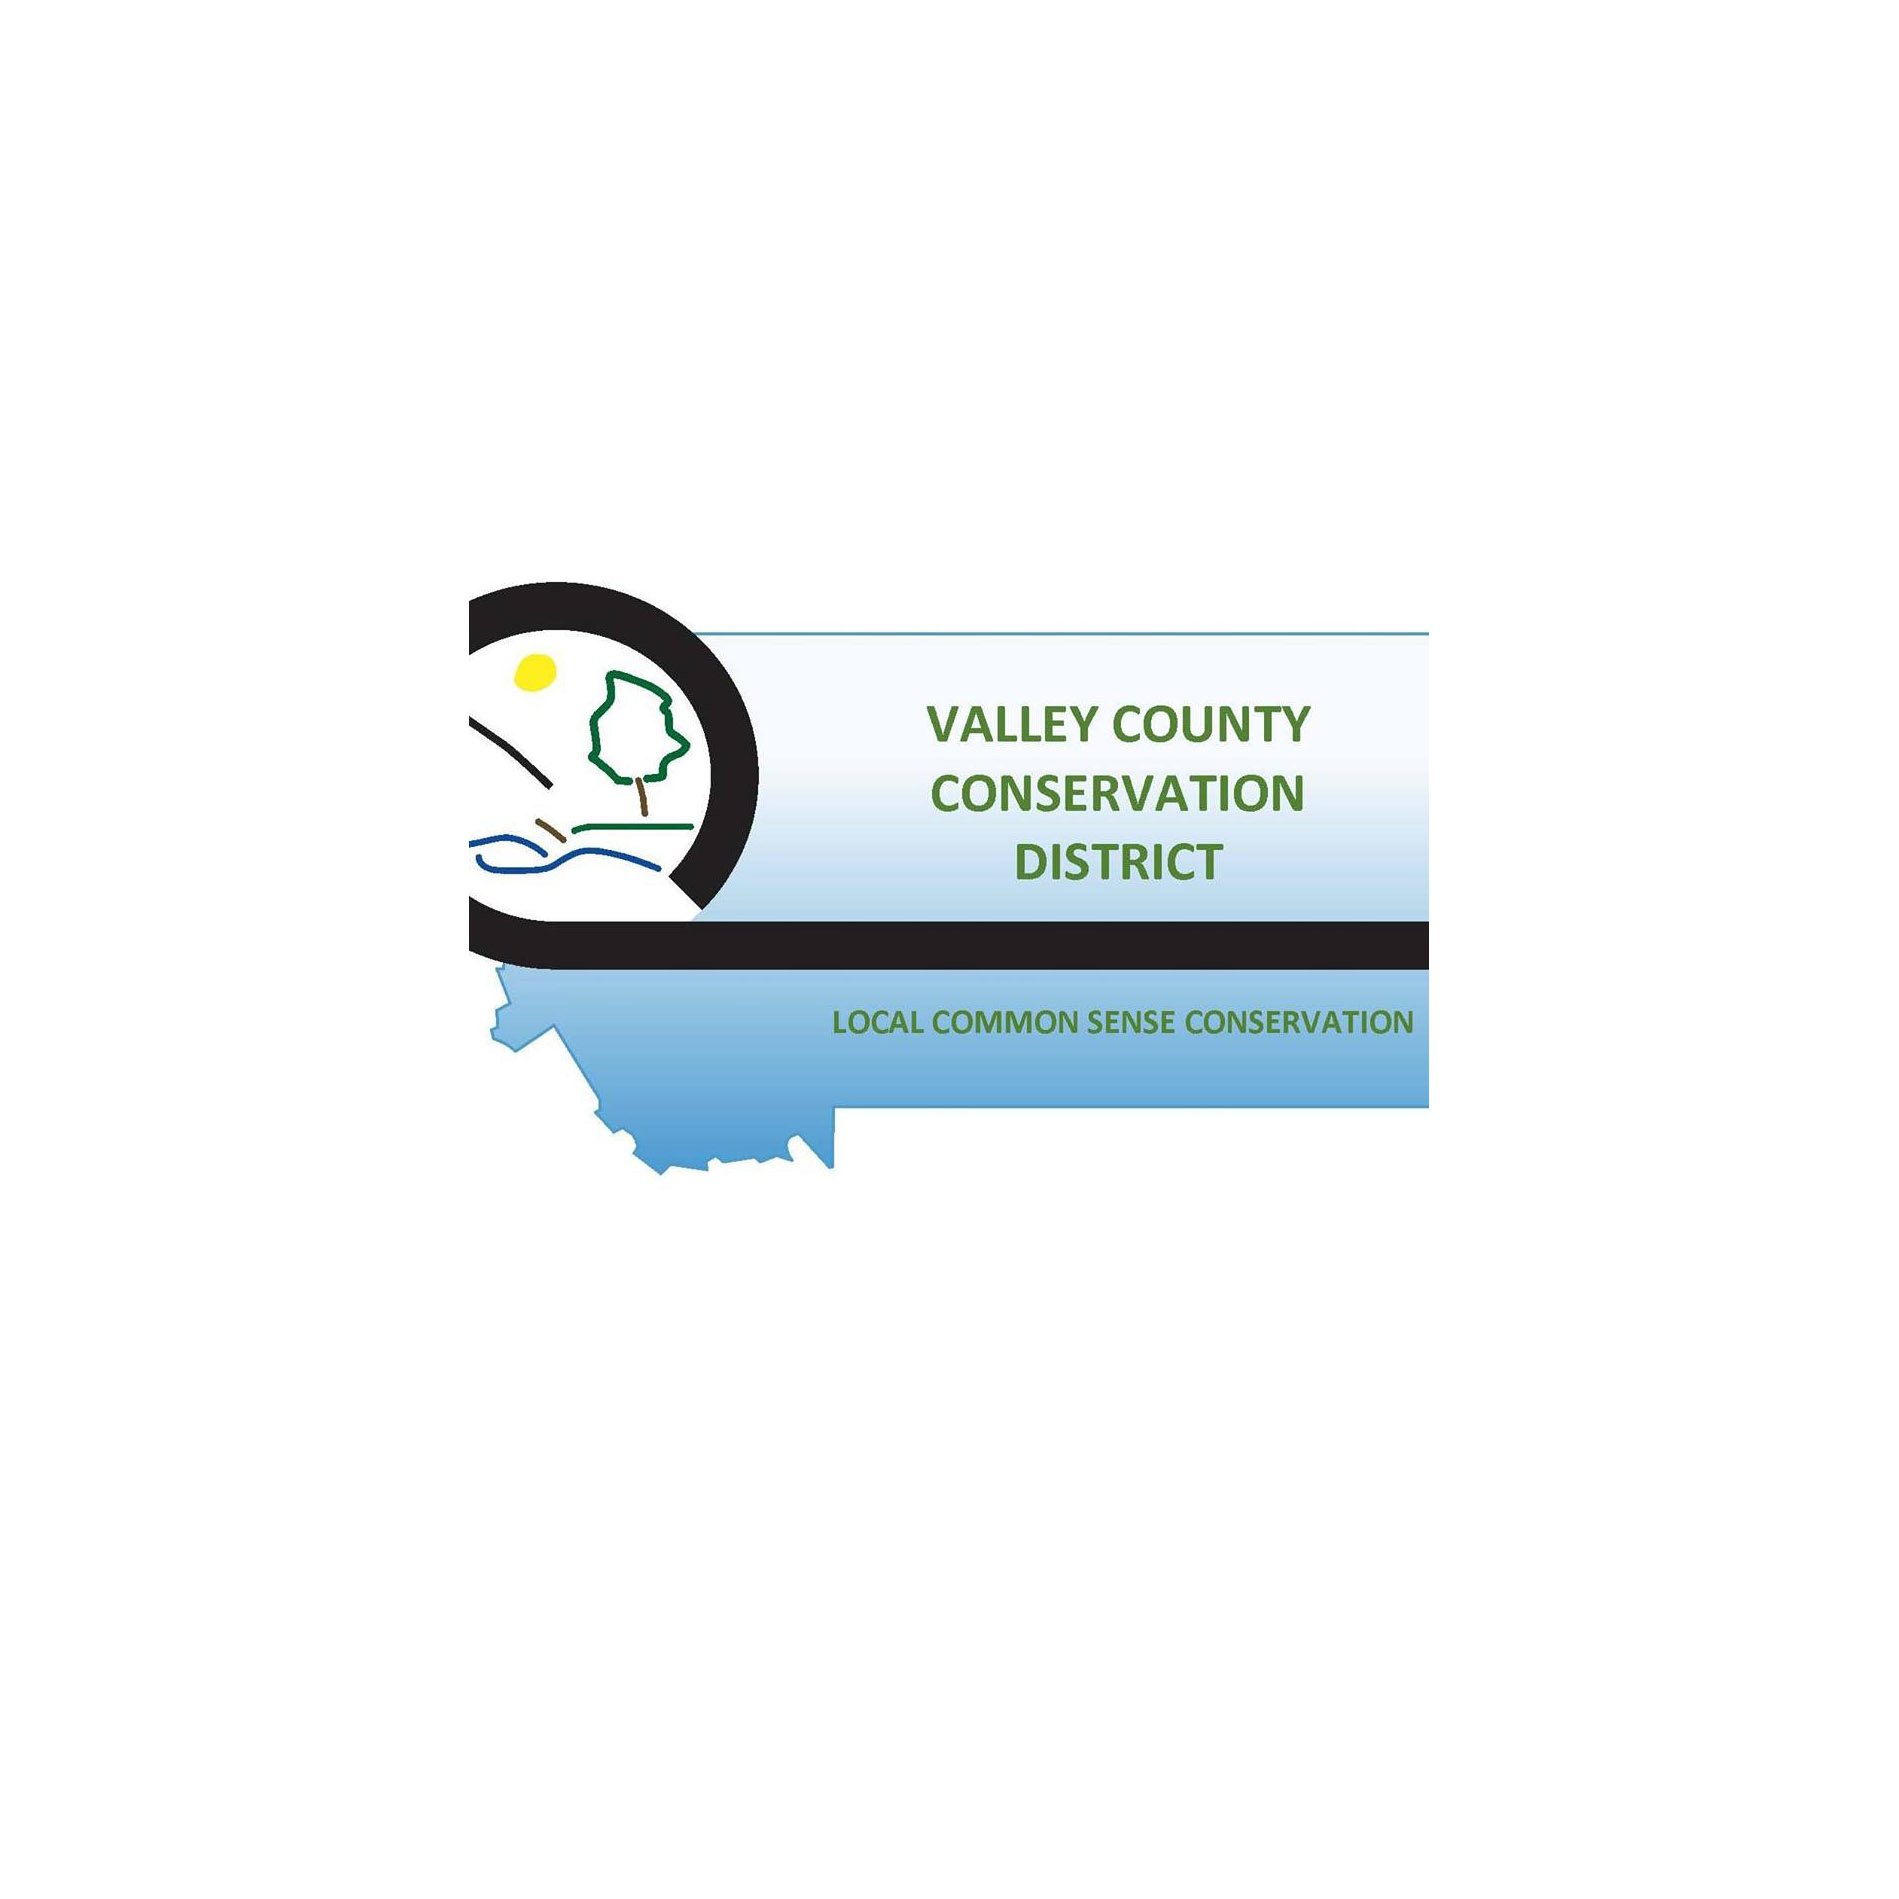 Valley County Conservation